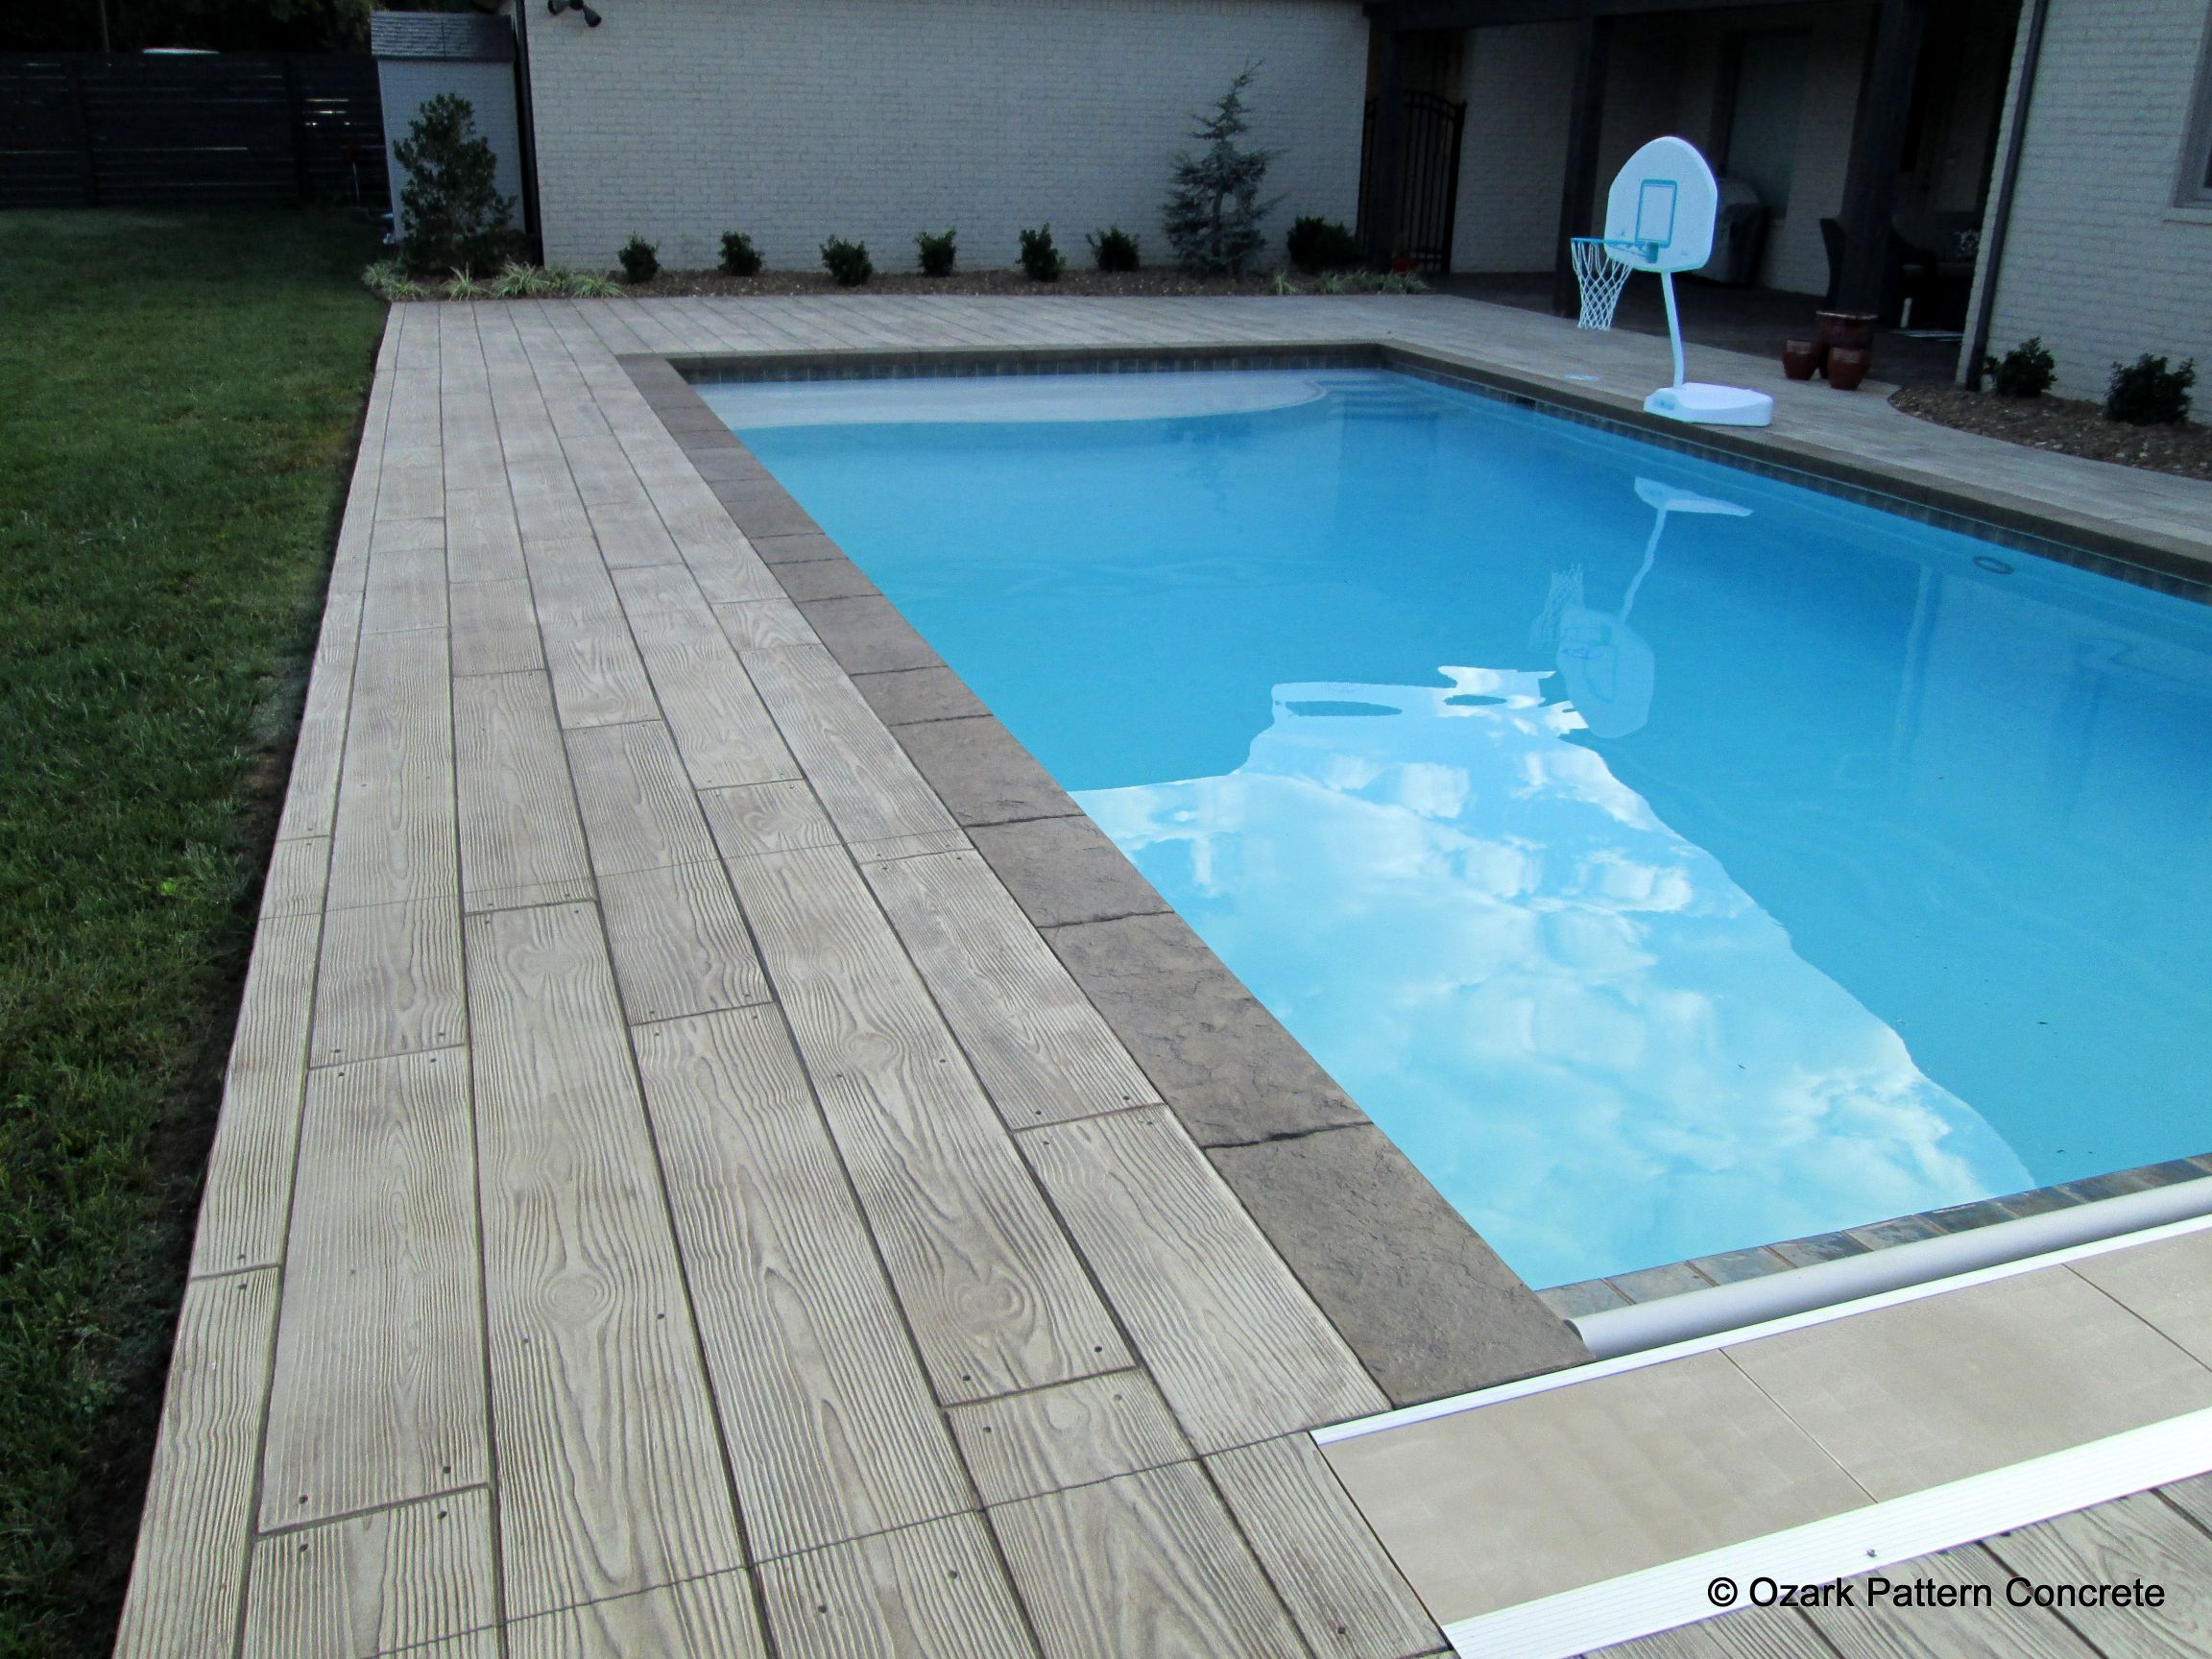 Concrete Pool Deck In Wood Board Pattern With Contrasting Concrete Pool Coping Pool Deck Ideas Inground Pool Patio Wood Pool Deck